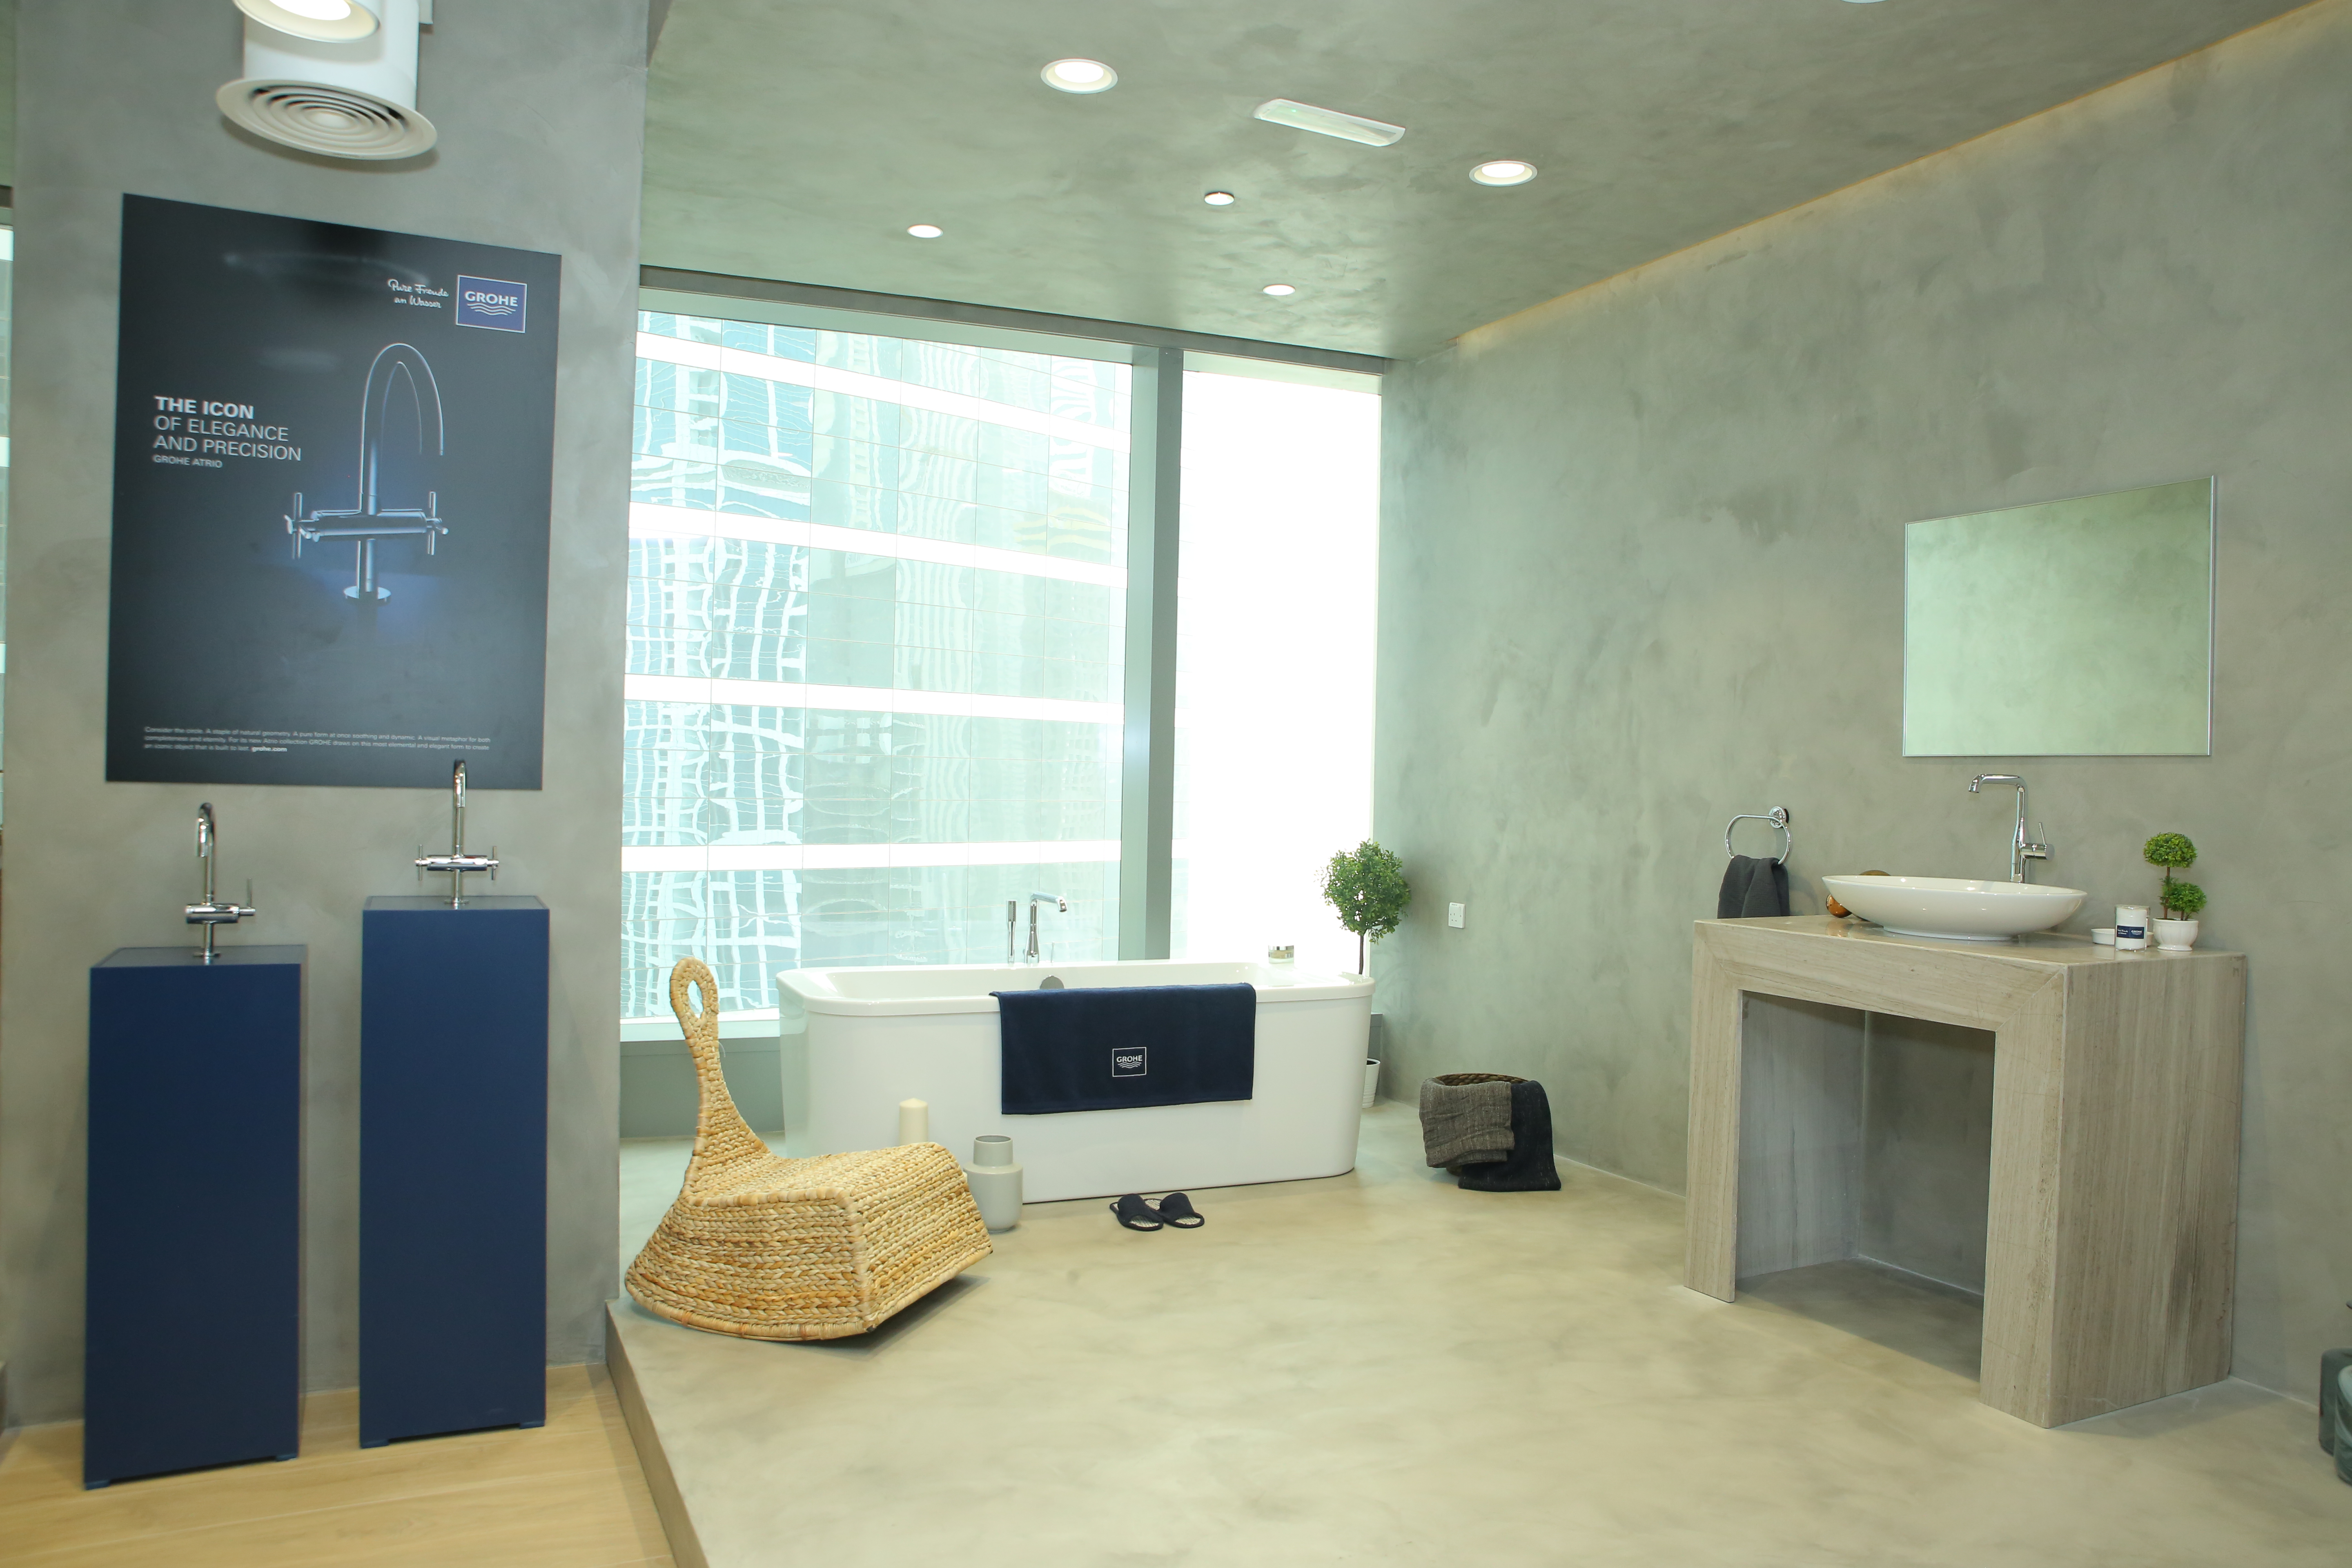 GROHE opens first showroom in Dubai - Design Middle East